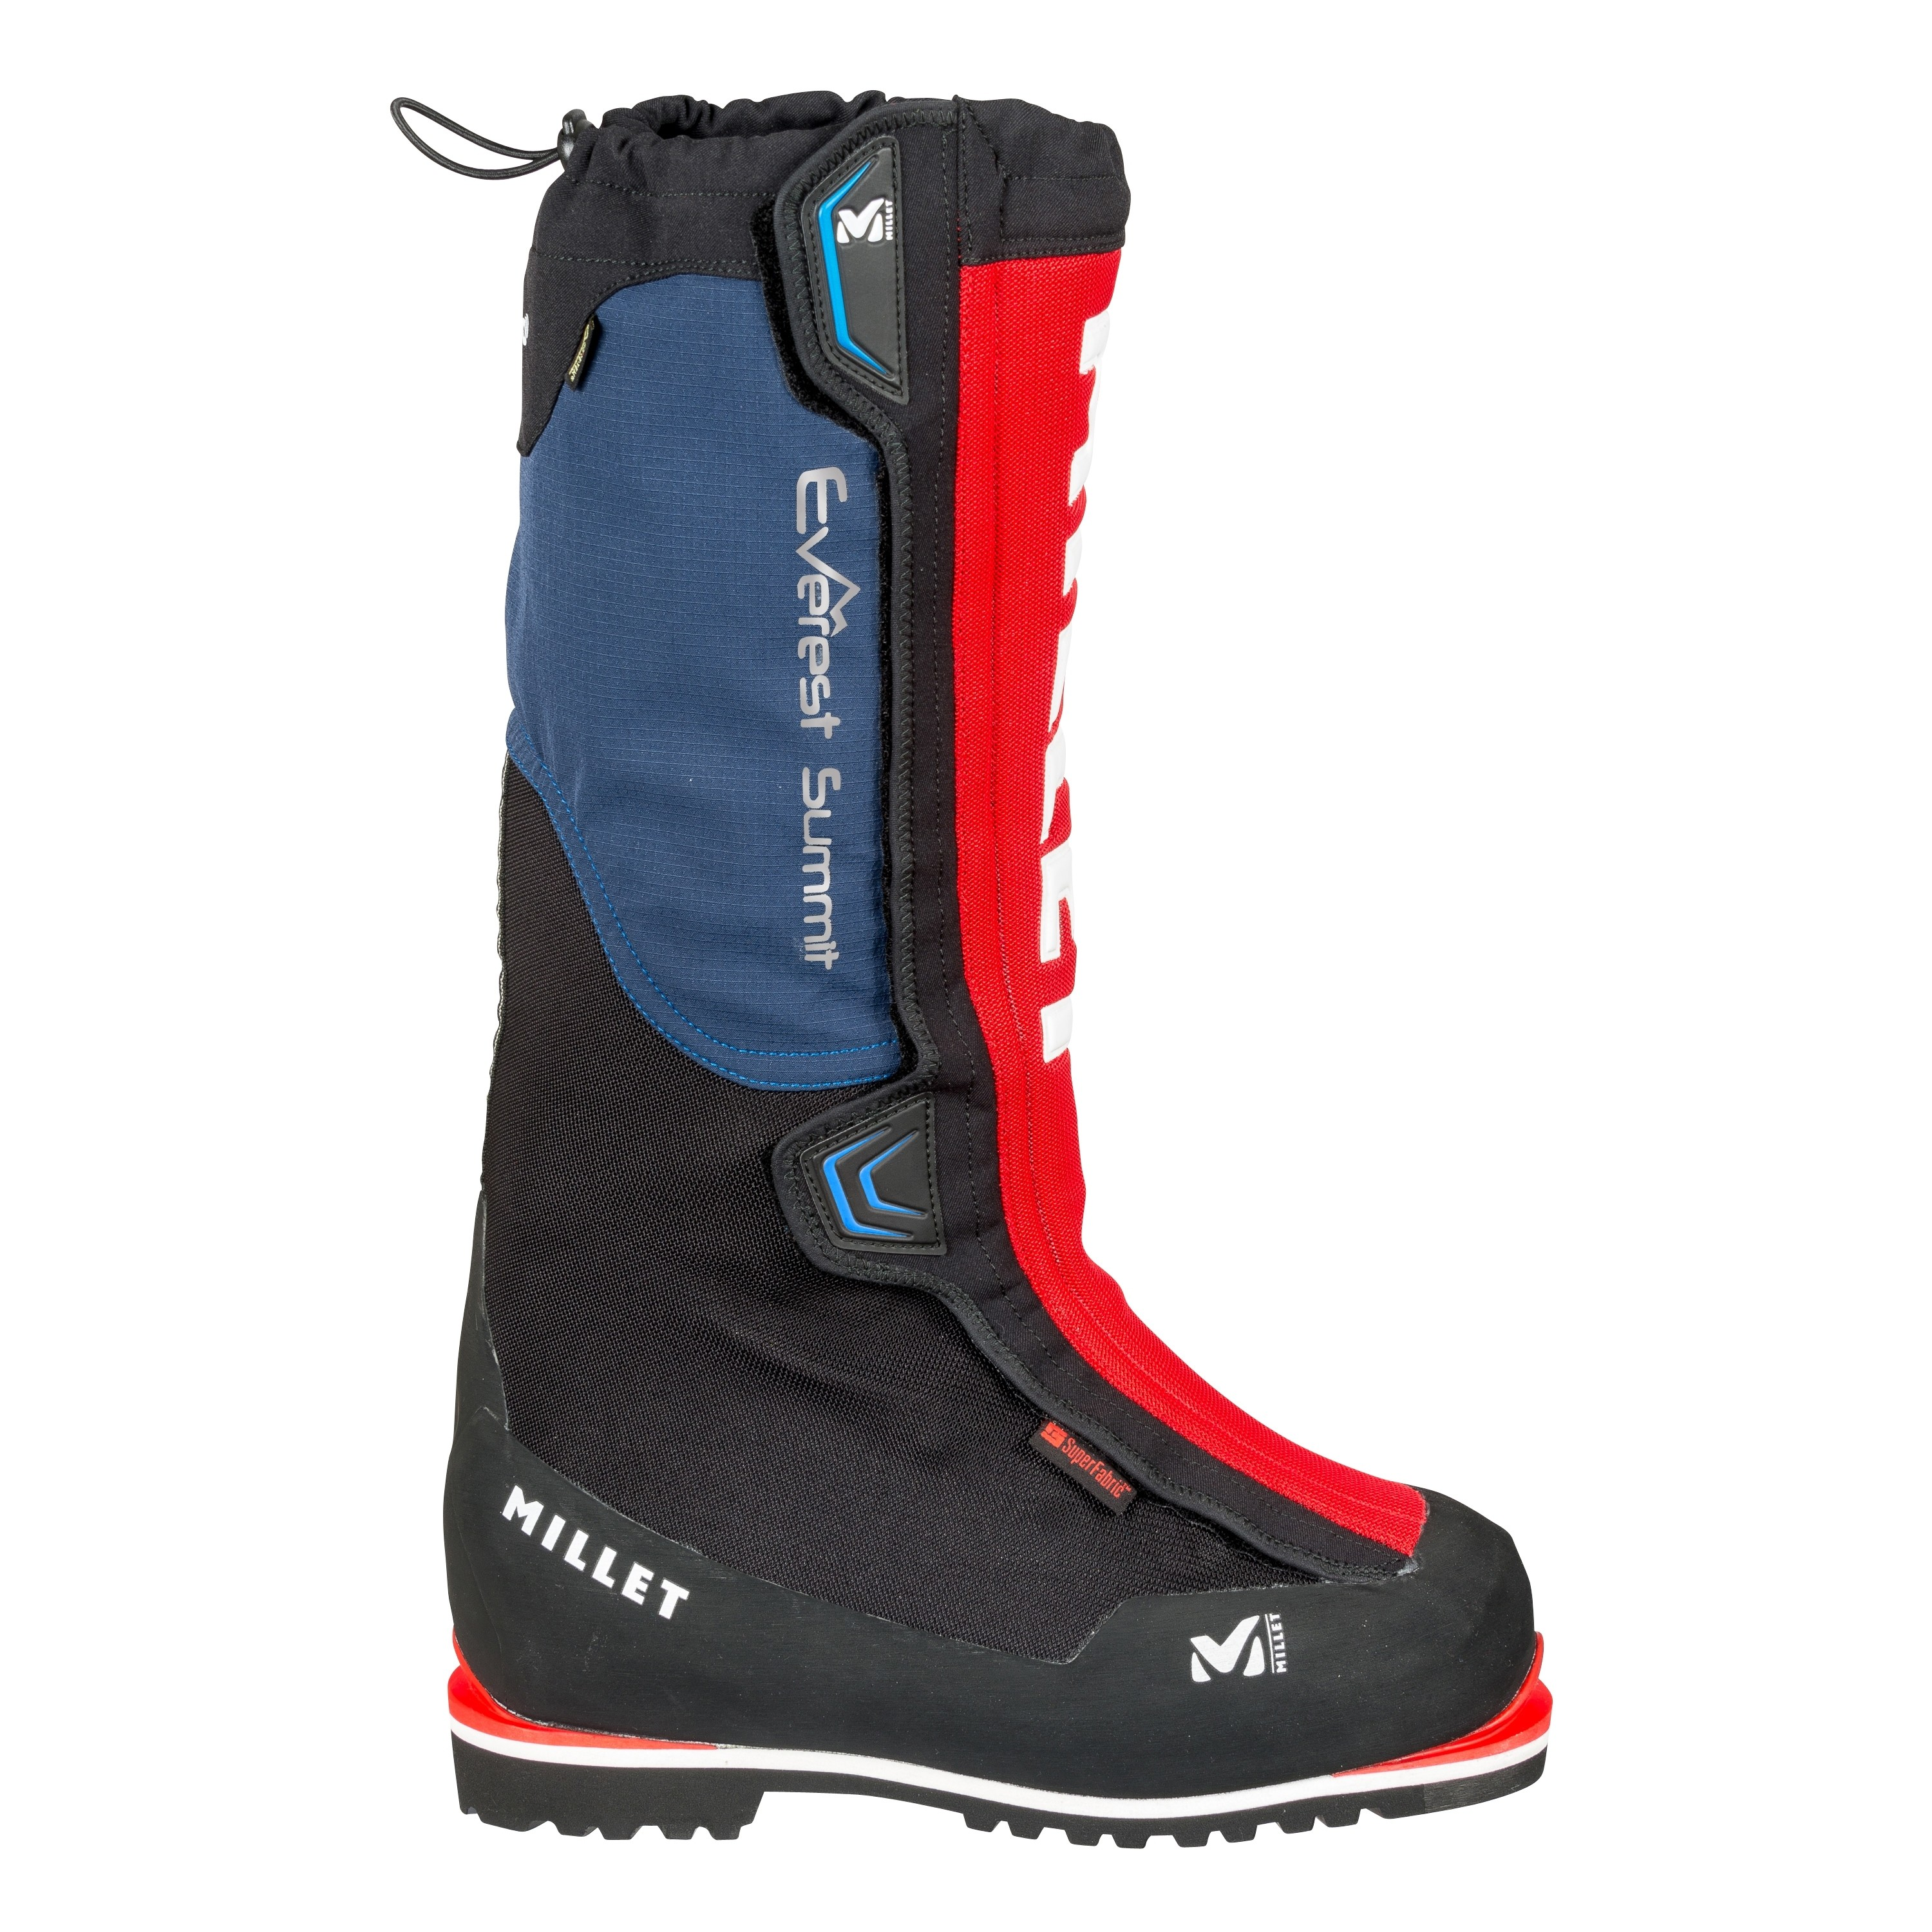 EVEREST SUMMIT GTX